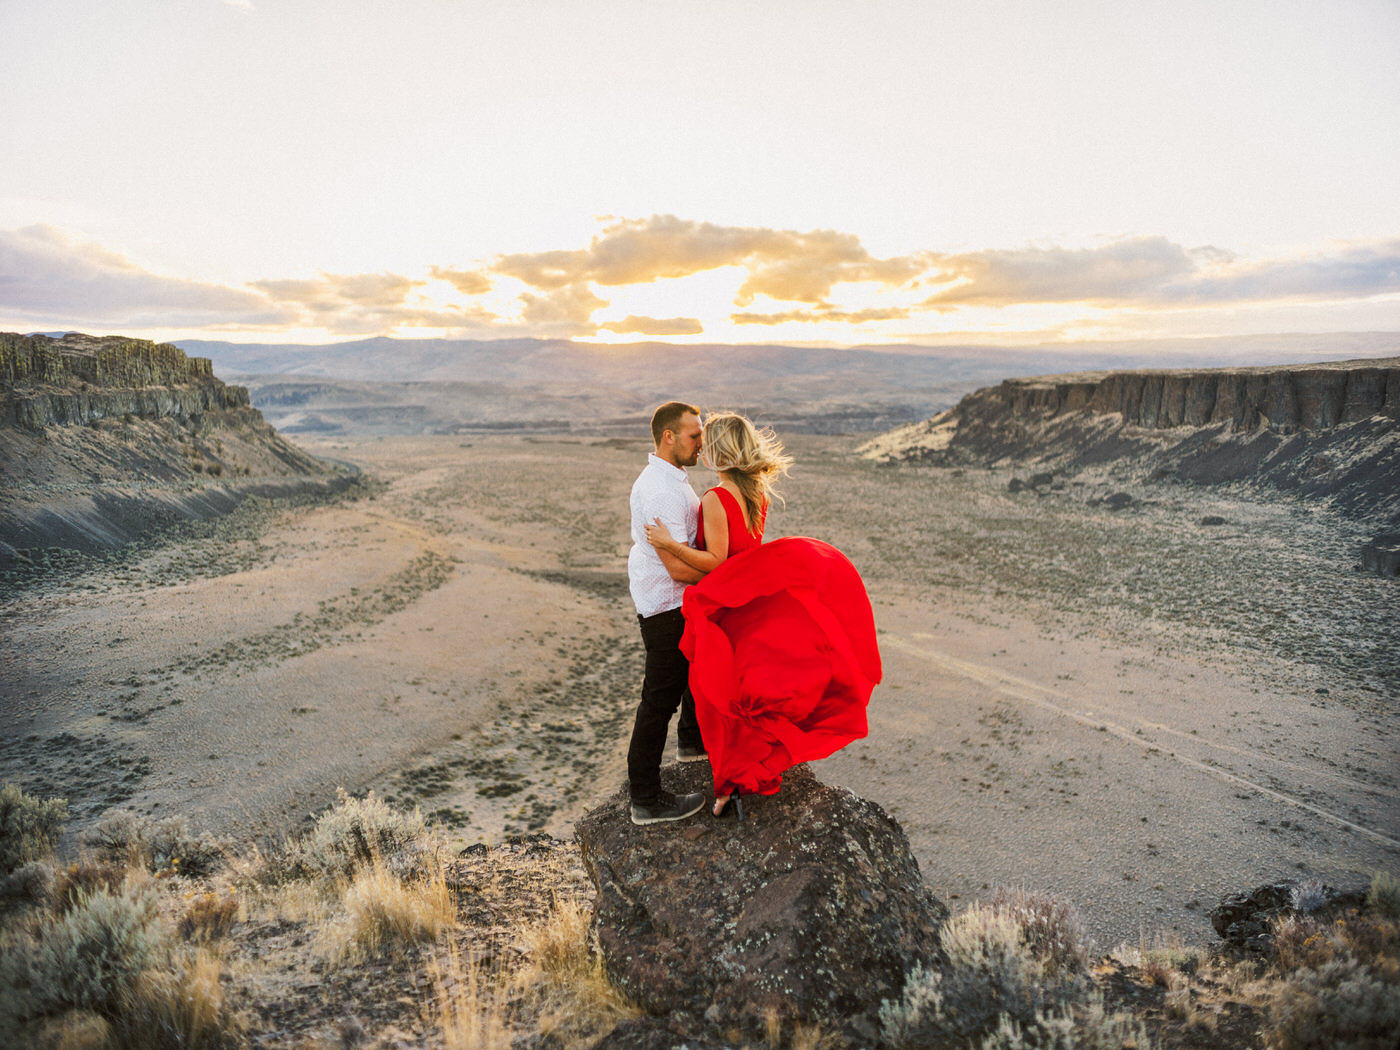 108-vantage-washington-desert-engagement-shoot.jpg